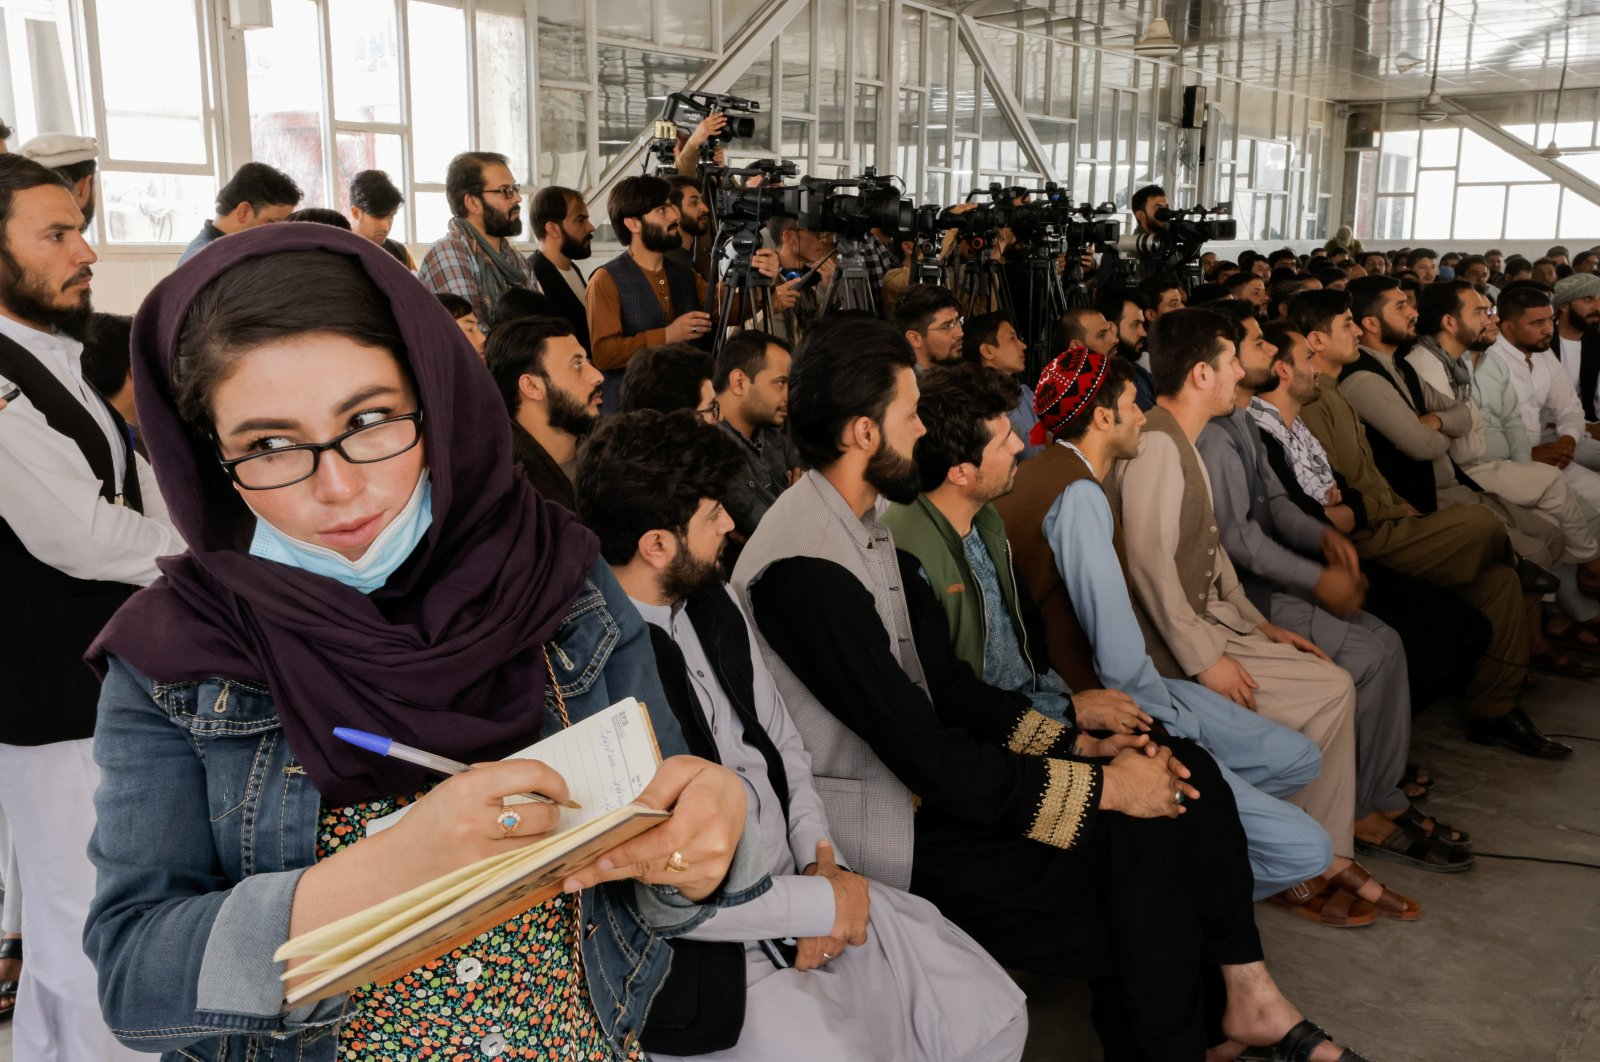 An Afghan female journalist attends a Taliban news conference where they announced they will start issuing passports to Afghan citizens again following months of delays that hampered attempts by those trying to flee the country after the Taliban seized control, in Kabul, Afghanistan, Oct. 5, 2021. (Reuters Photo)